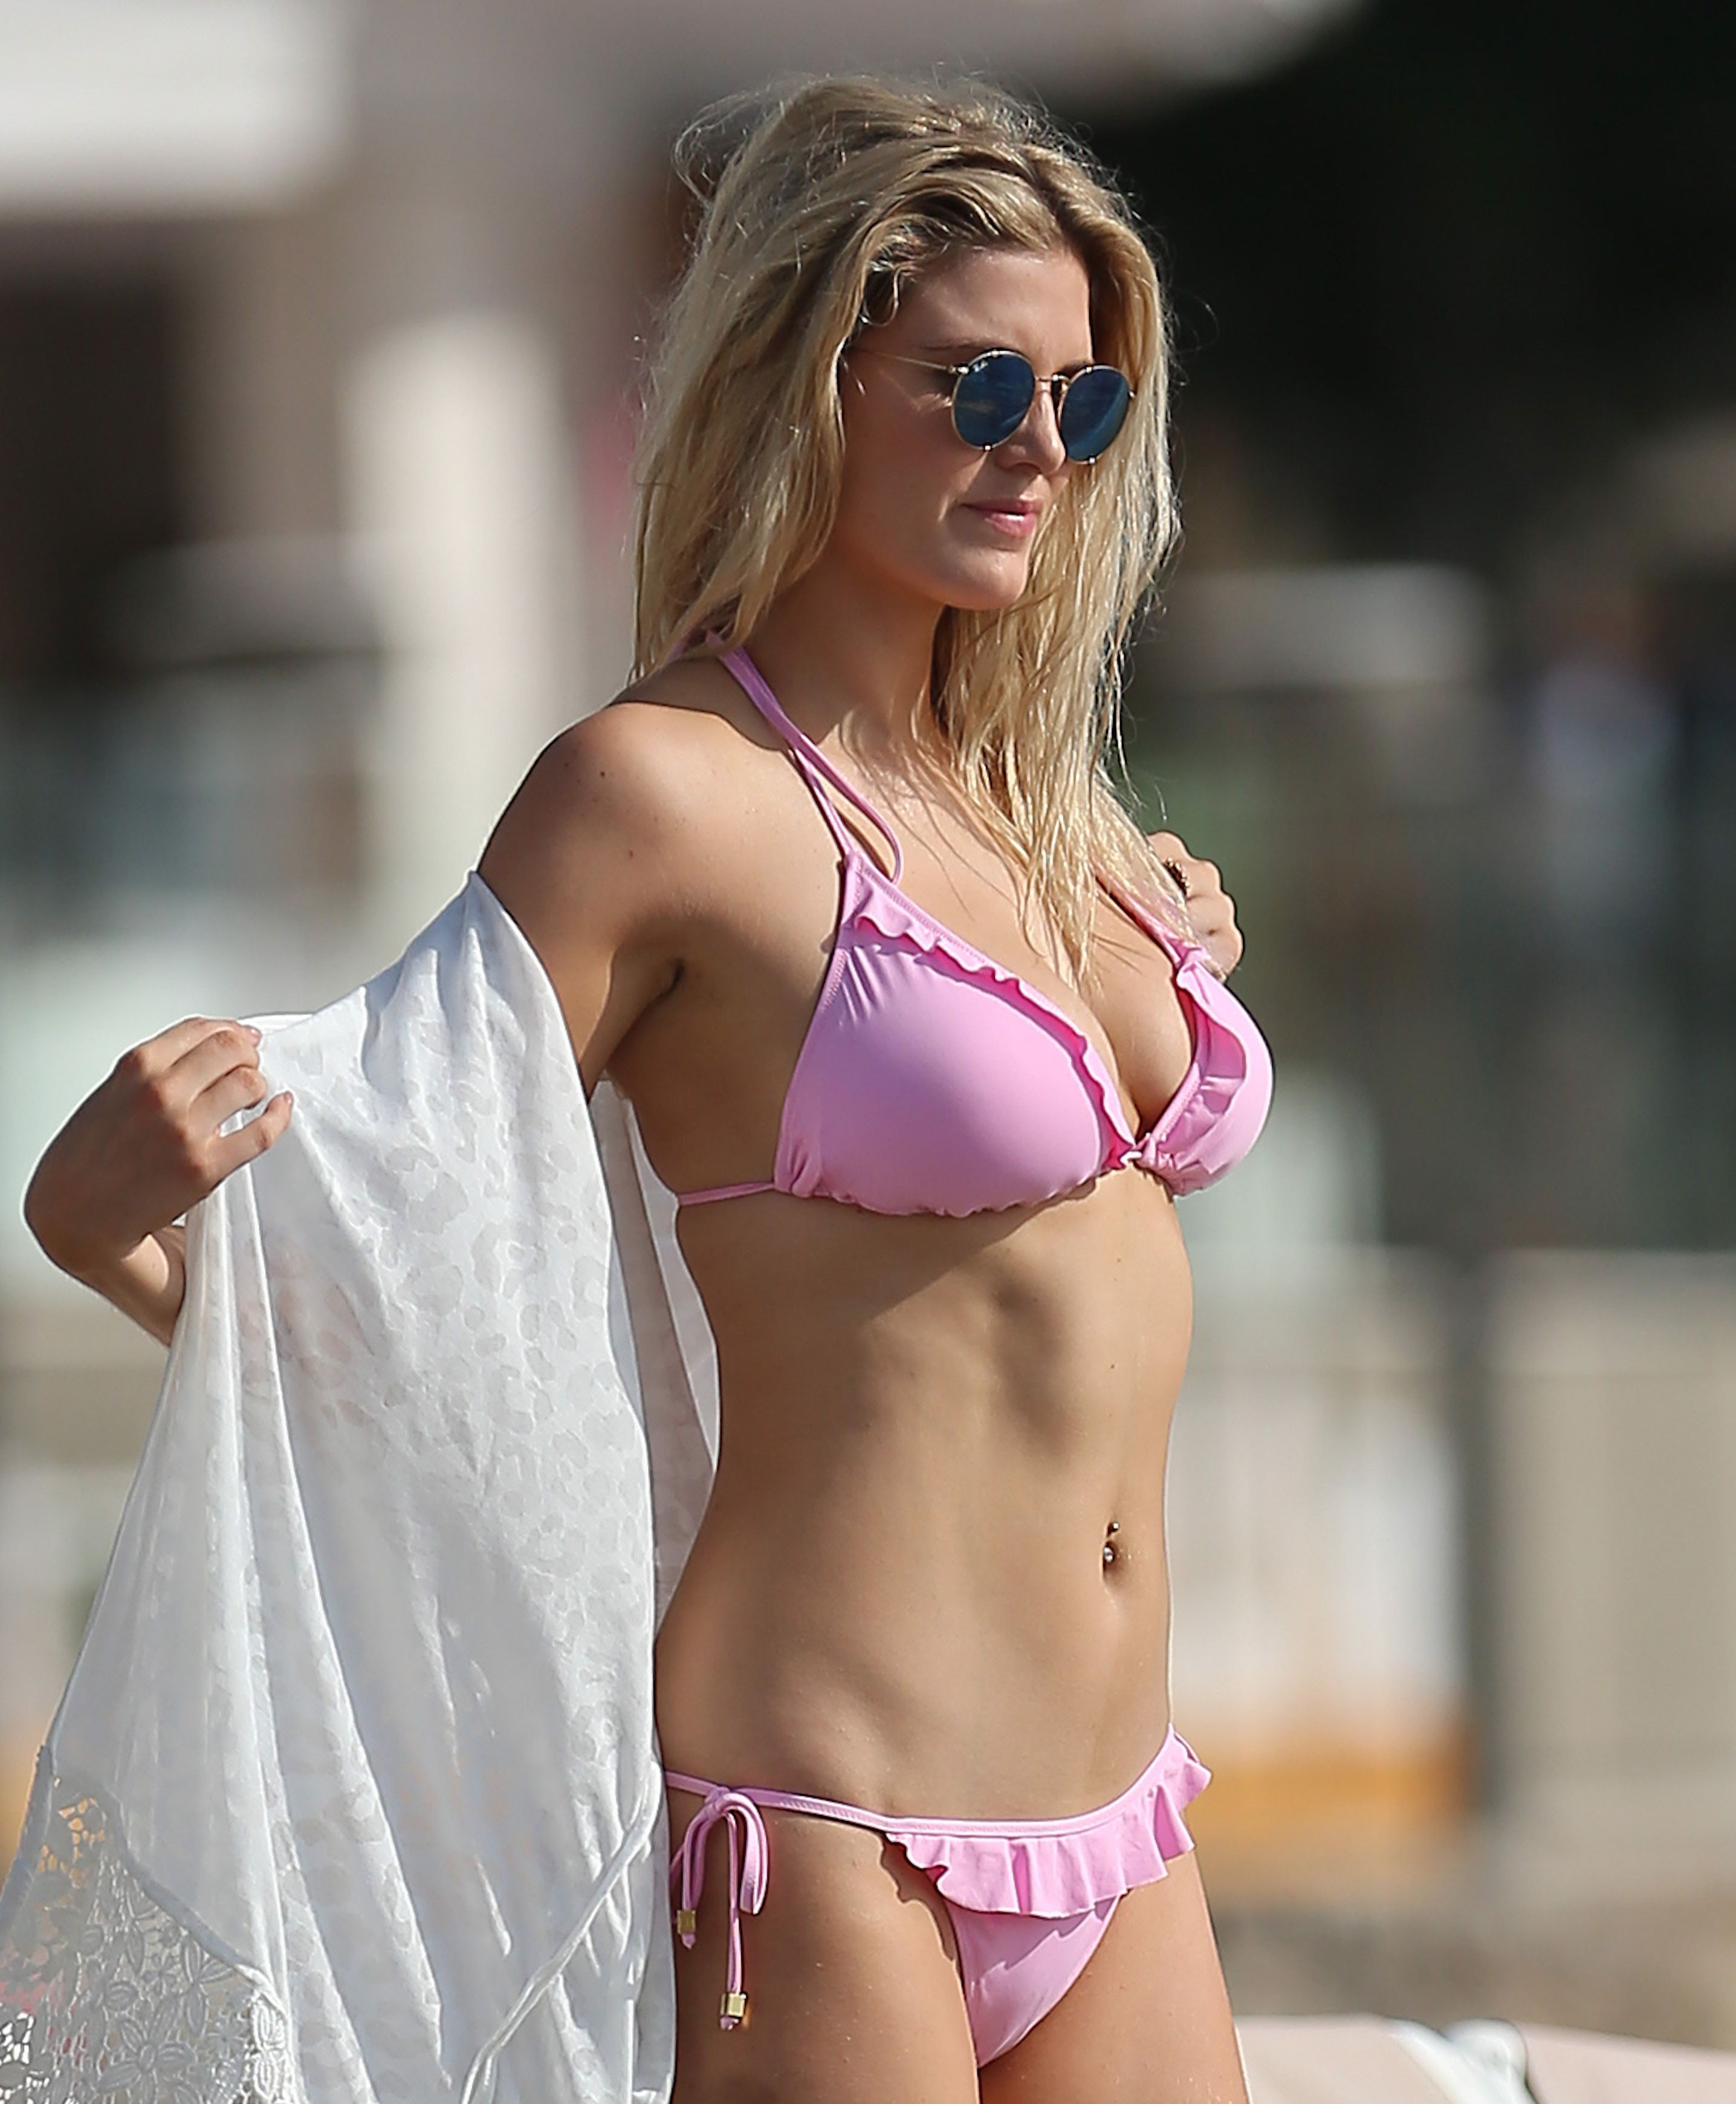 Ashley james boobs naked body parts of celebrities